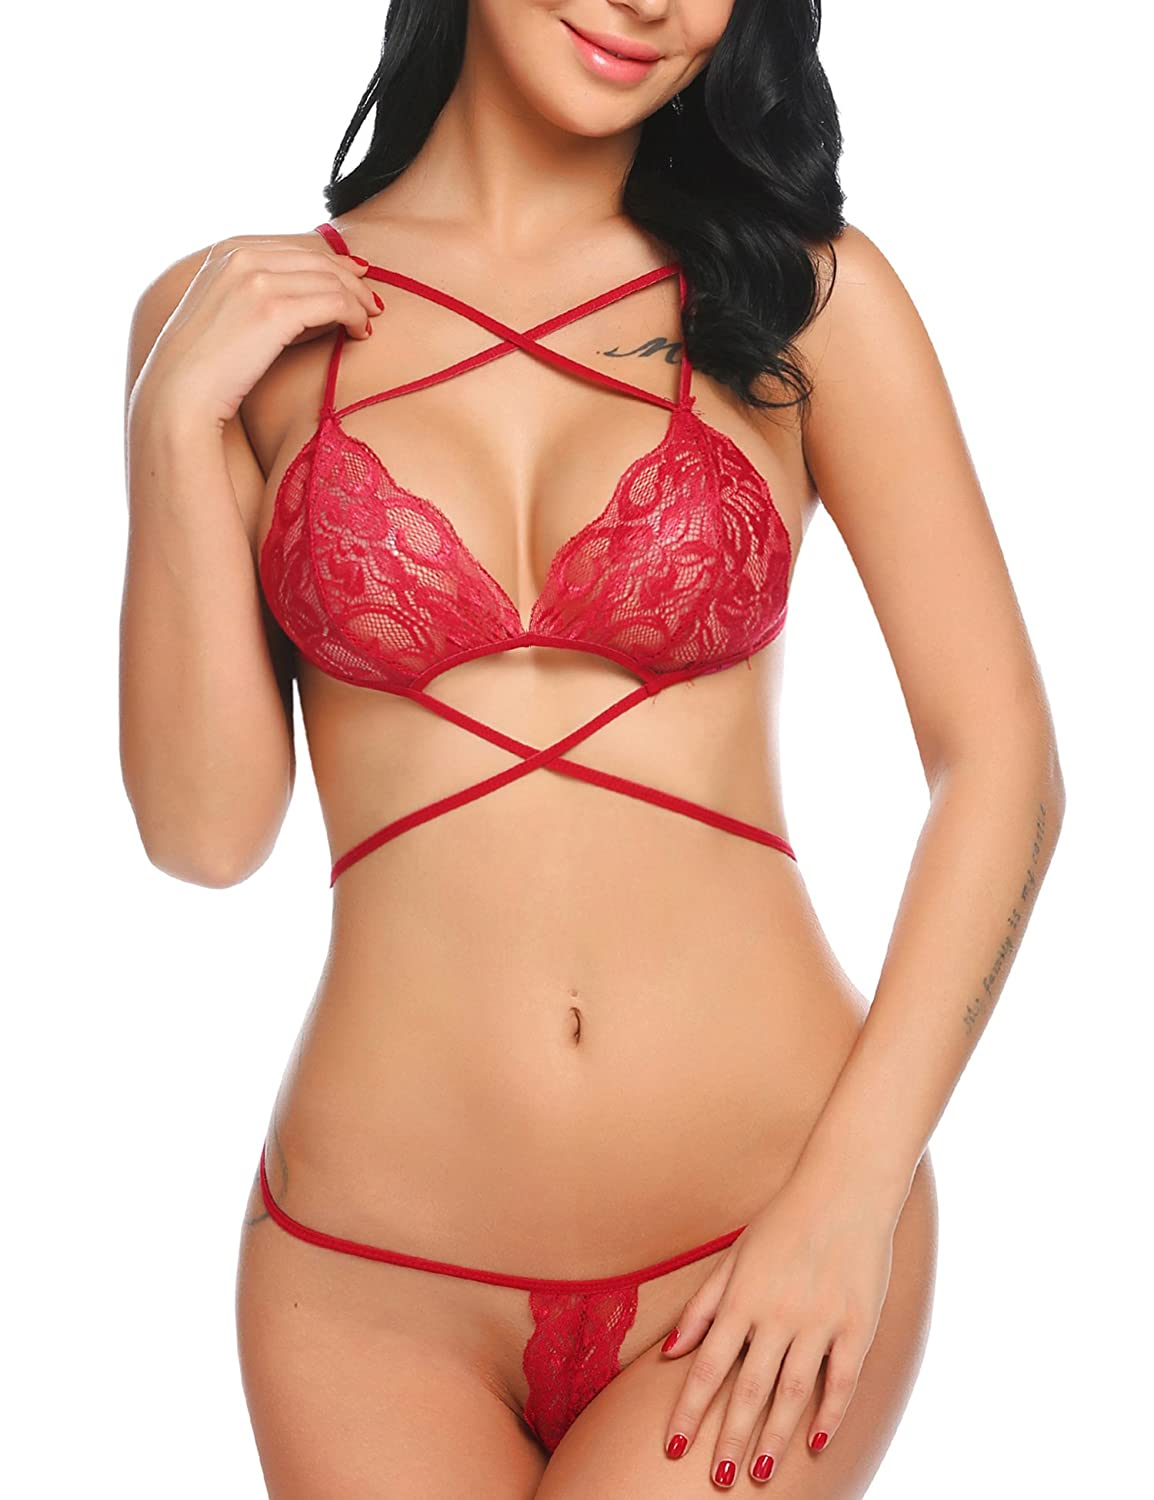 7f8b8f8074 This lingerie set is made from high quality lace material which is very  kind to skin